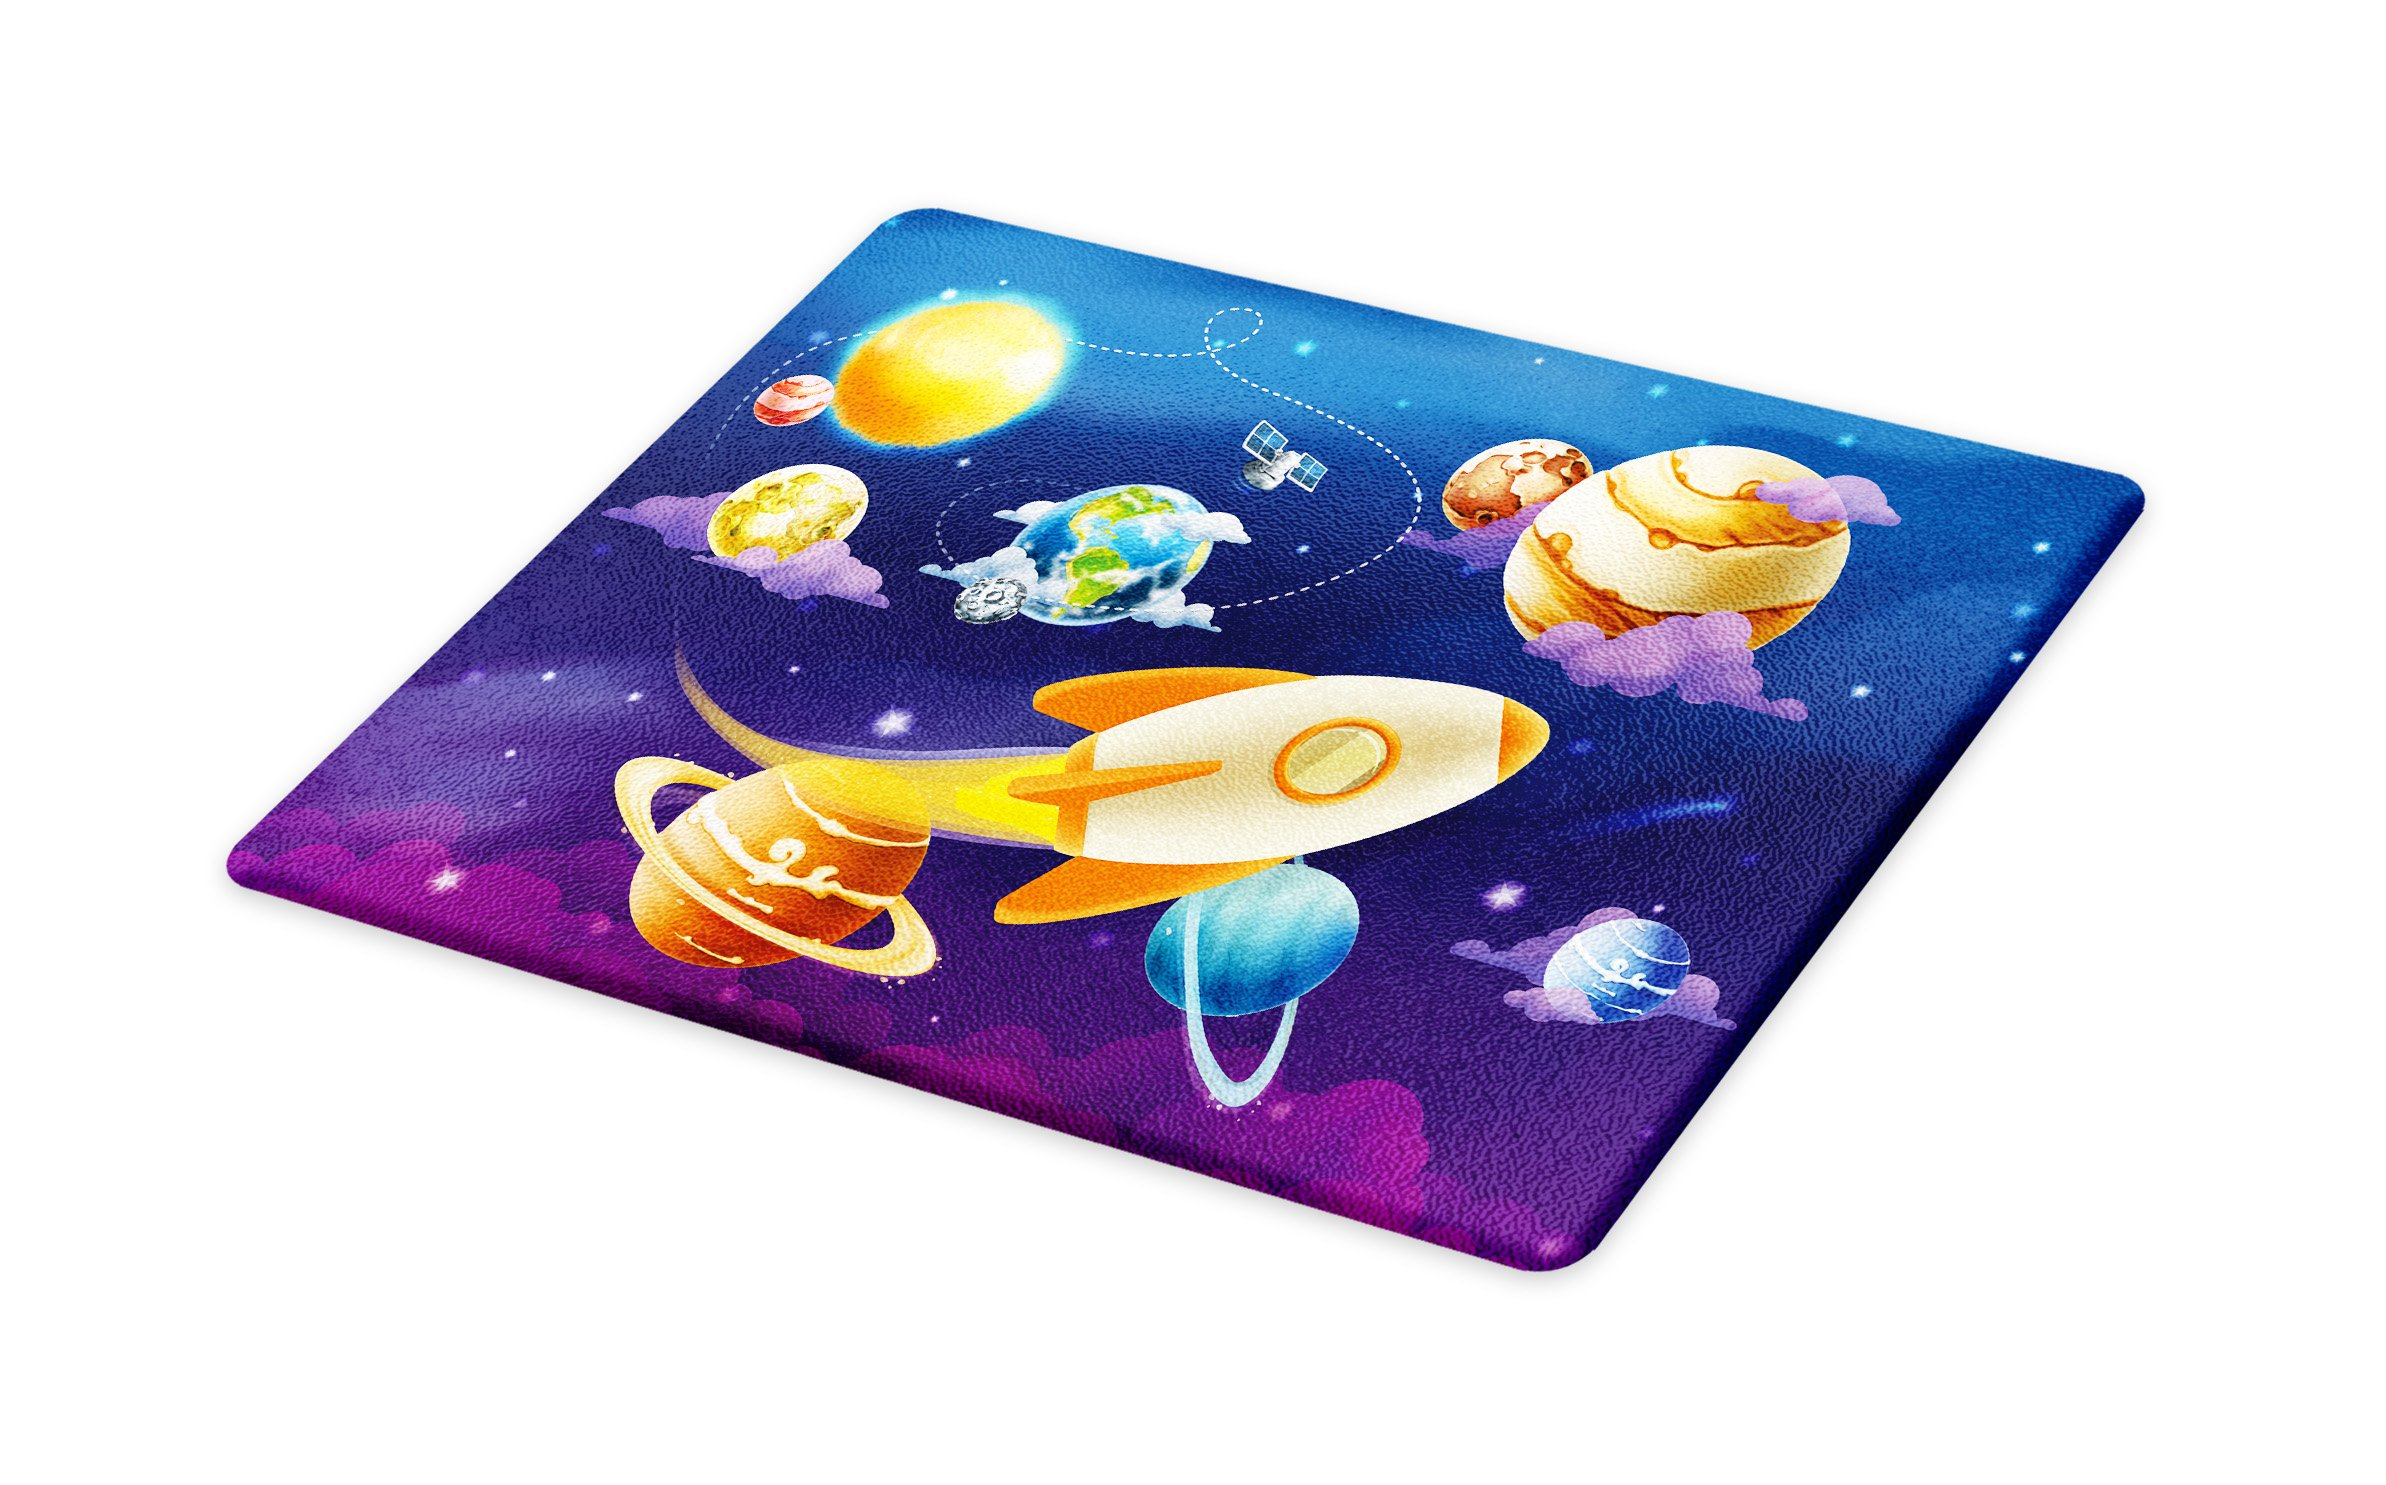 Lunarable Boy's Room Cutting Board, Solar System of Planets with a Cute Spaceship Milky Way Galaxy Earth Jupiter Sun, Decorative Tempered Glass Cutting and Serving Board, Small Size, Multicolor